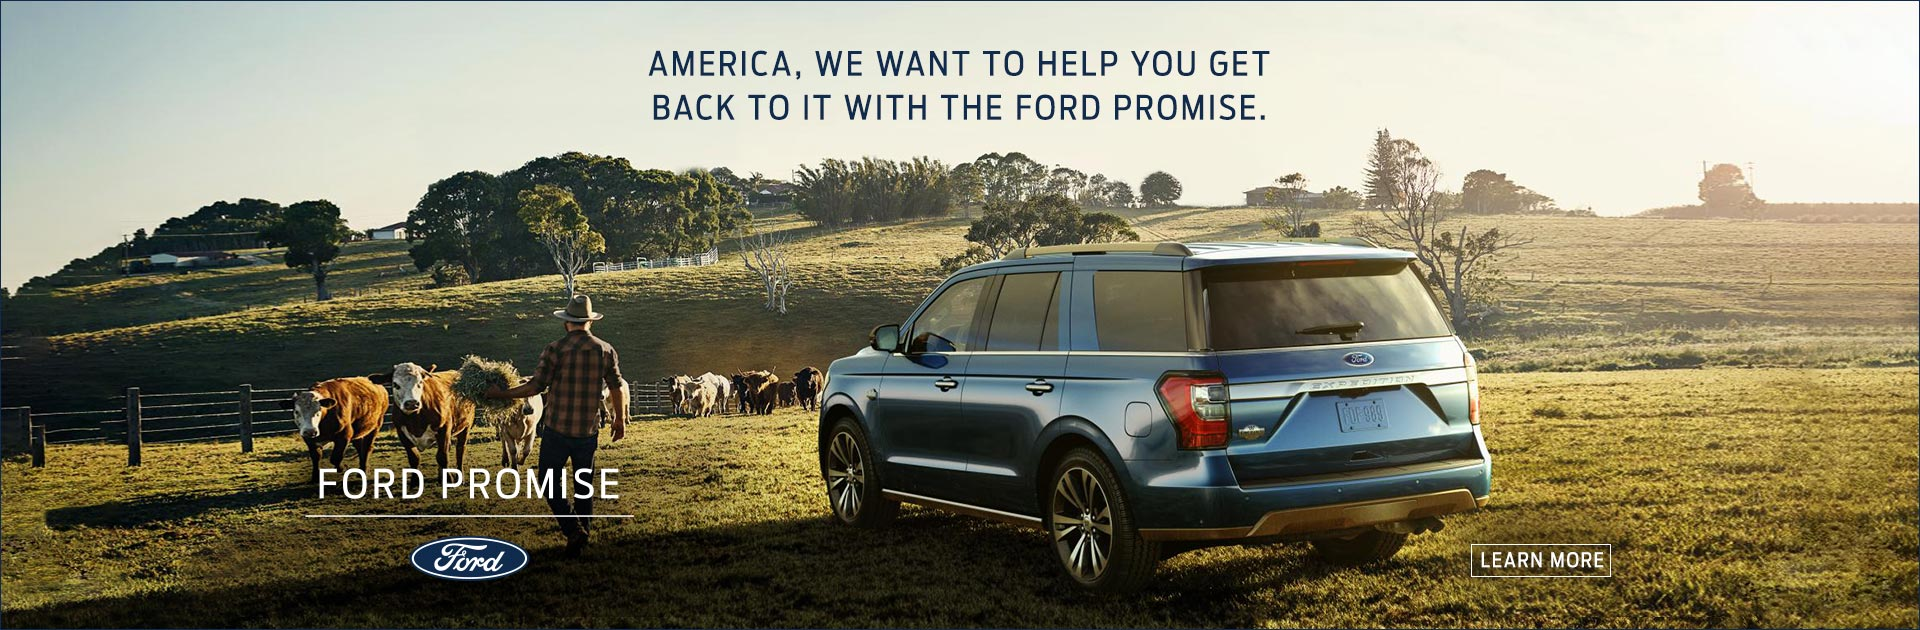 Ford Promise Banner